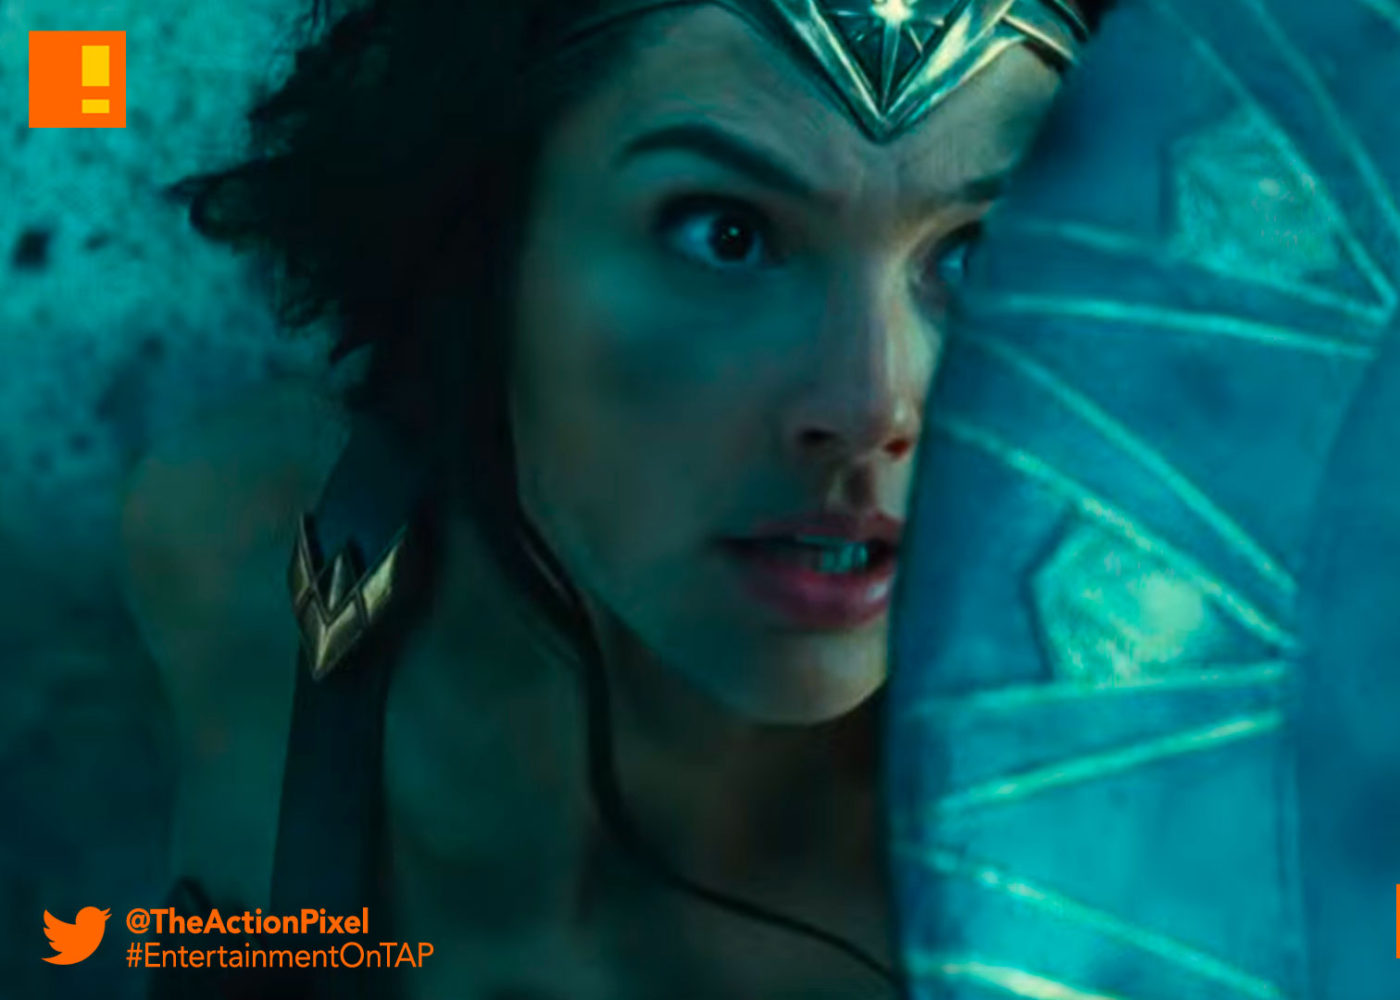 diana prince, rise of the warrior, final trailer, trailer,commercial,ad, wonder woman,the action pixel, entertainment on tap, wb pictures, warner bros. entertainment , the action pixel, gal gadot, ww,bracelets,